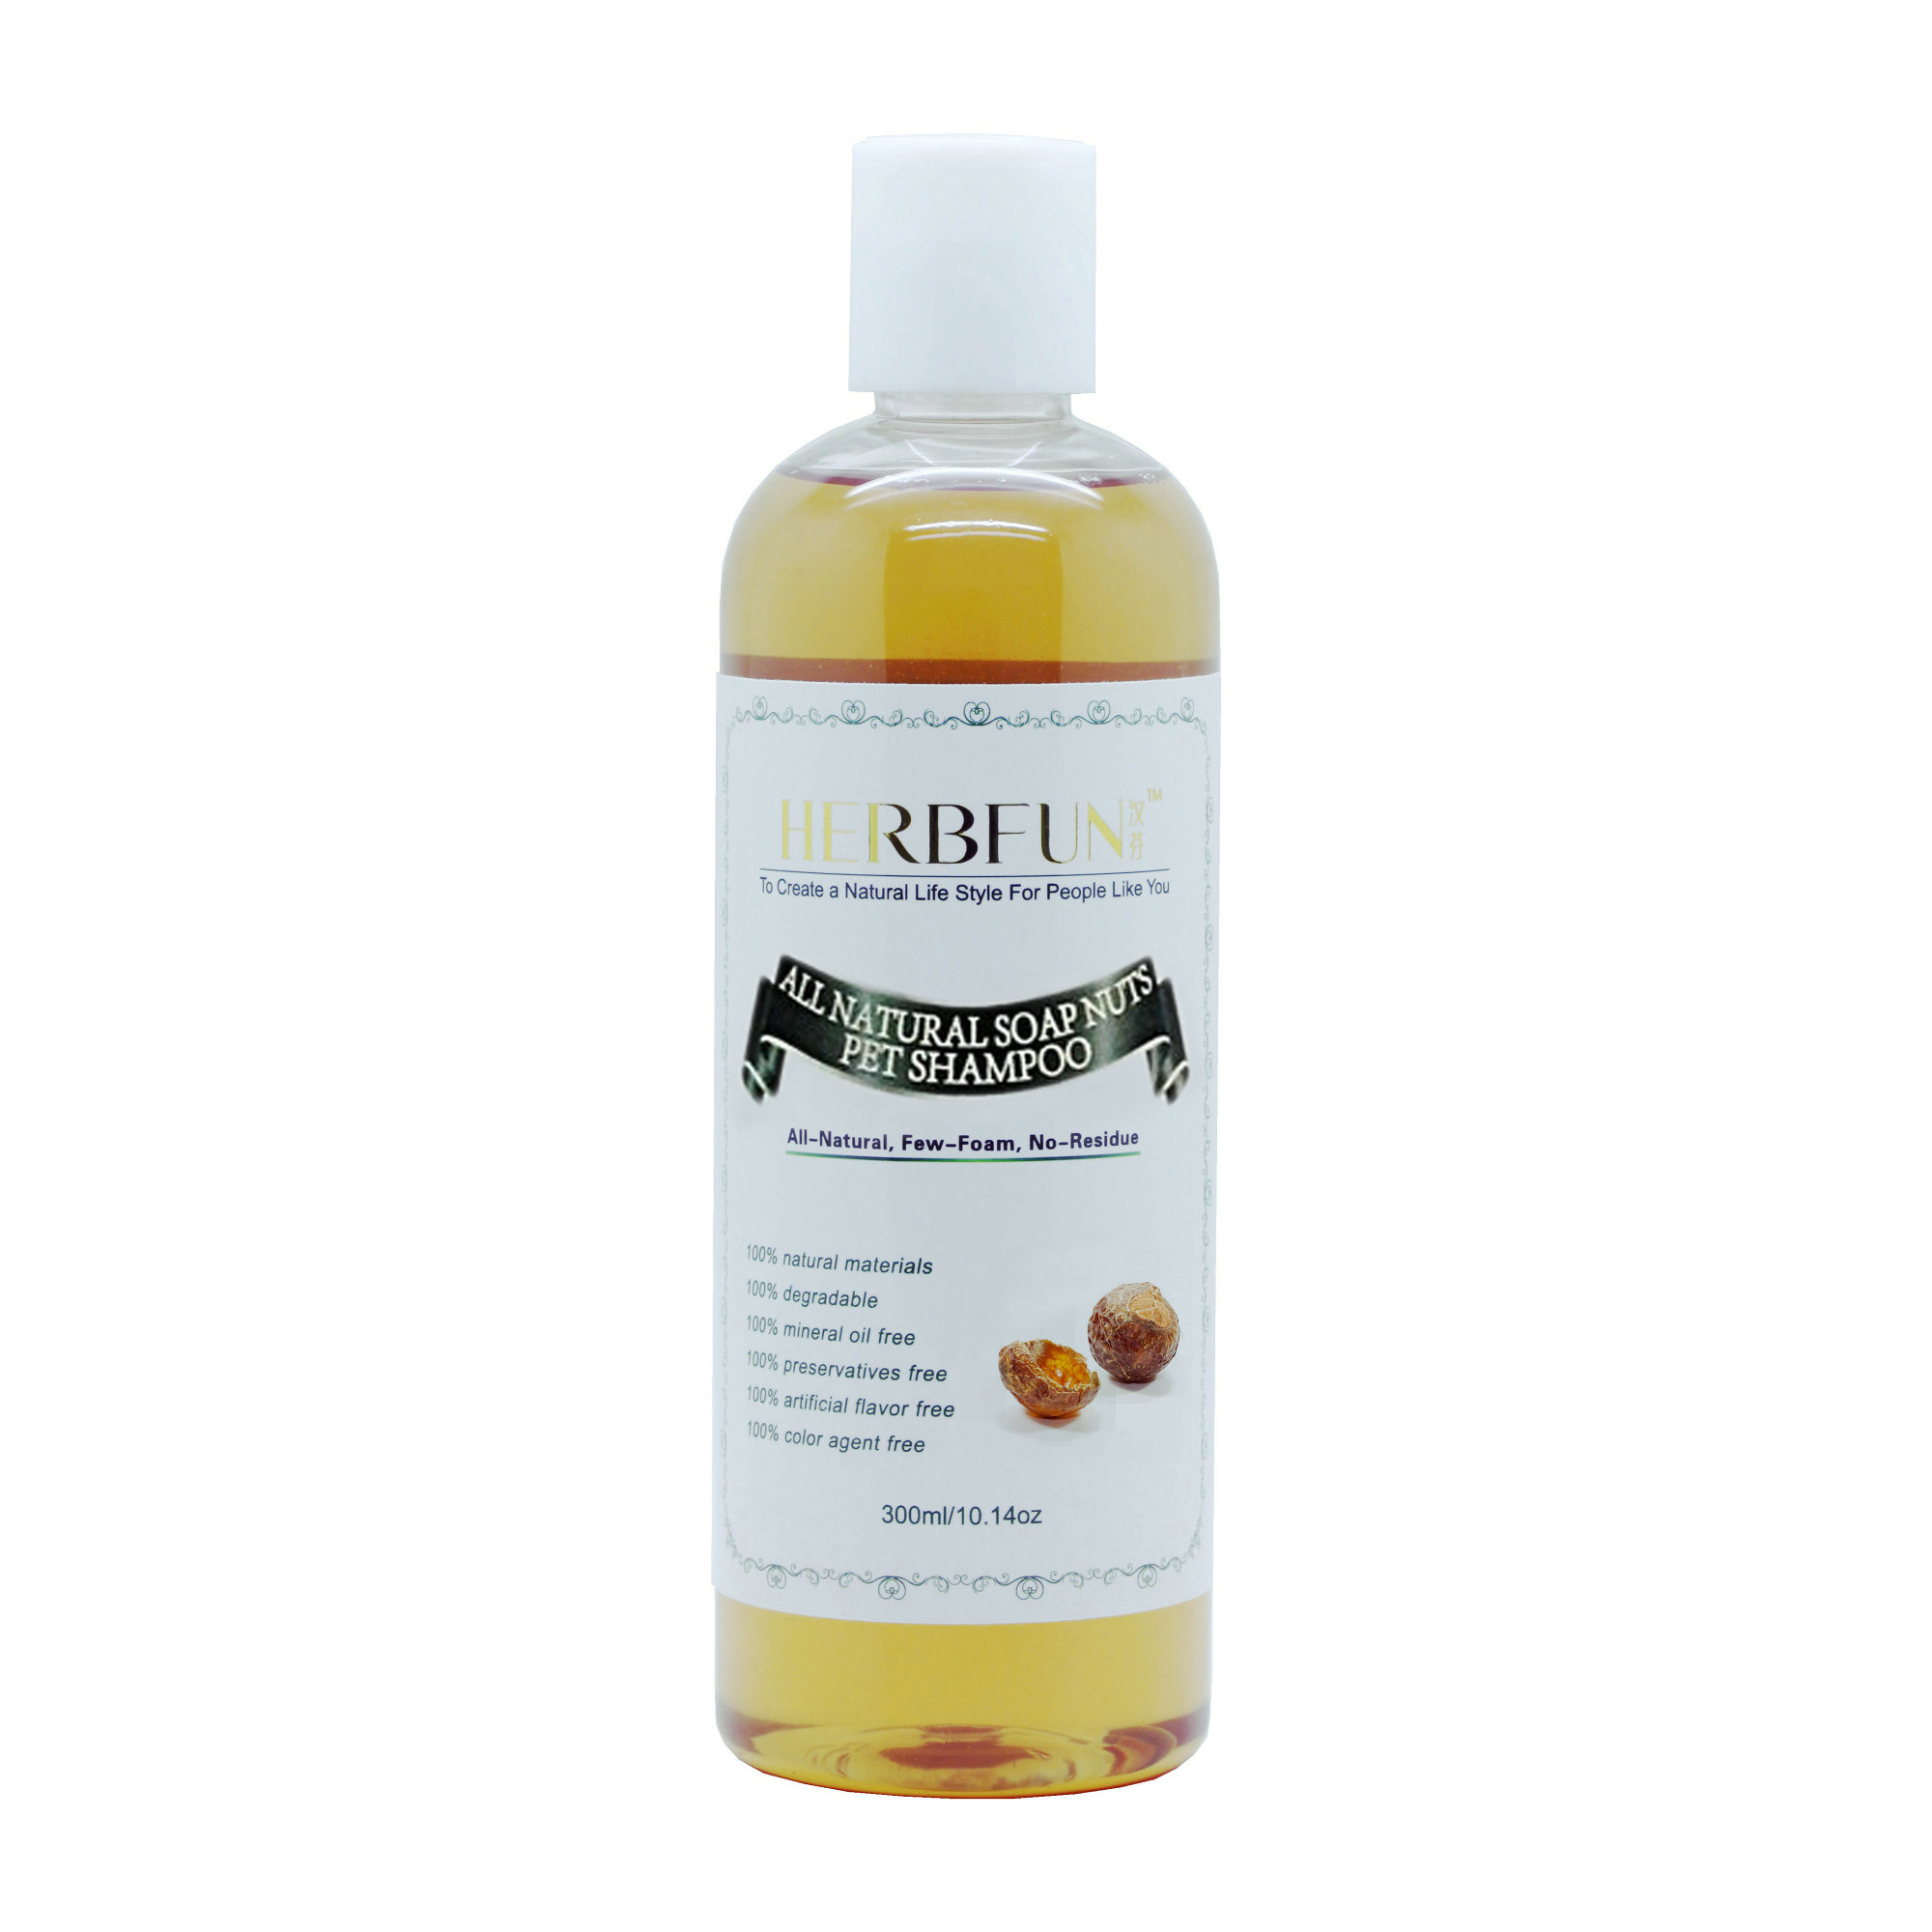 China Natural Dog Shampoo Anti-Bacterial/Anti-Fugal/Anti Itch/Promotes Healthy Hair and Skin - China Pet Shampoo, Dog Shampoo